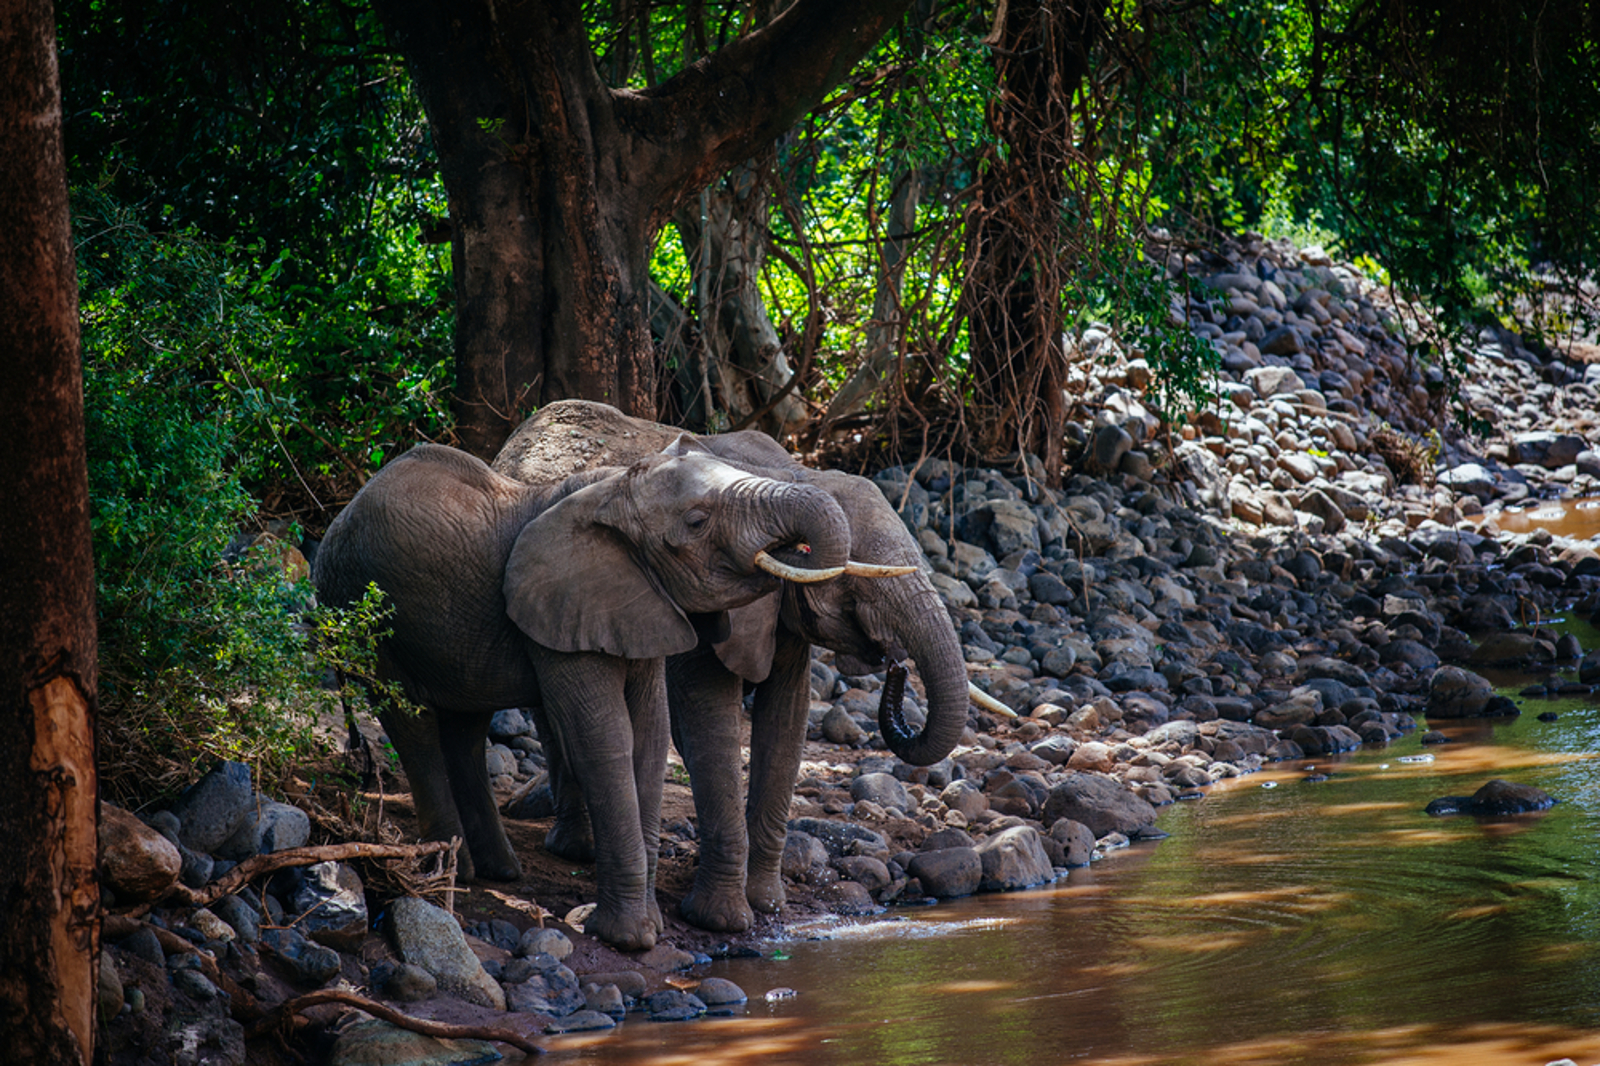 Africa's Forest Elephant Population Has Dropped 80 Percent – Here's What We Can Do to Help